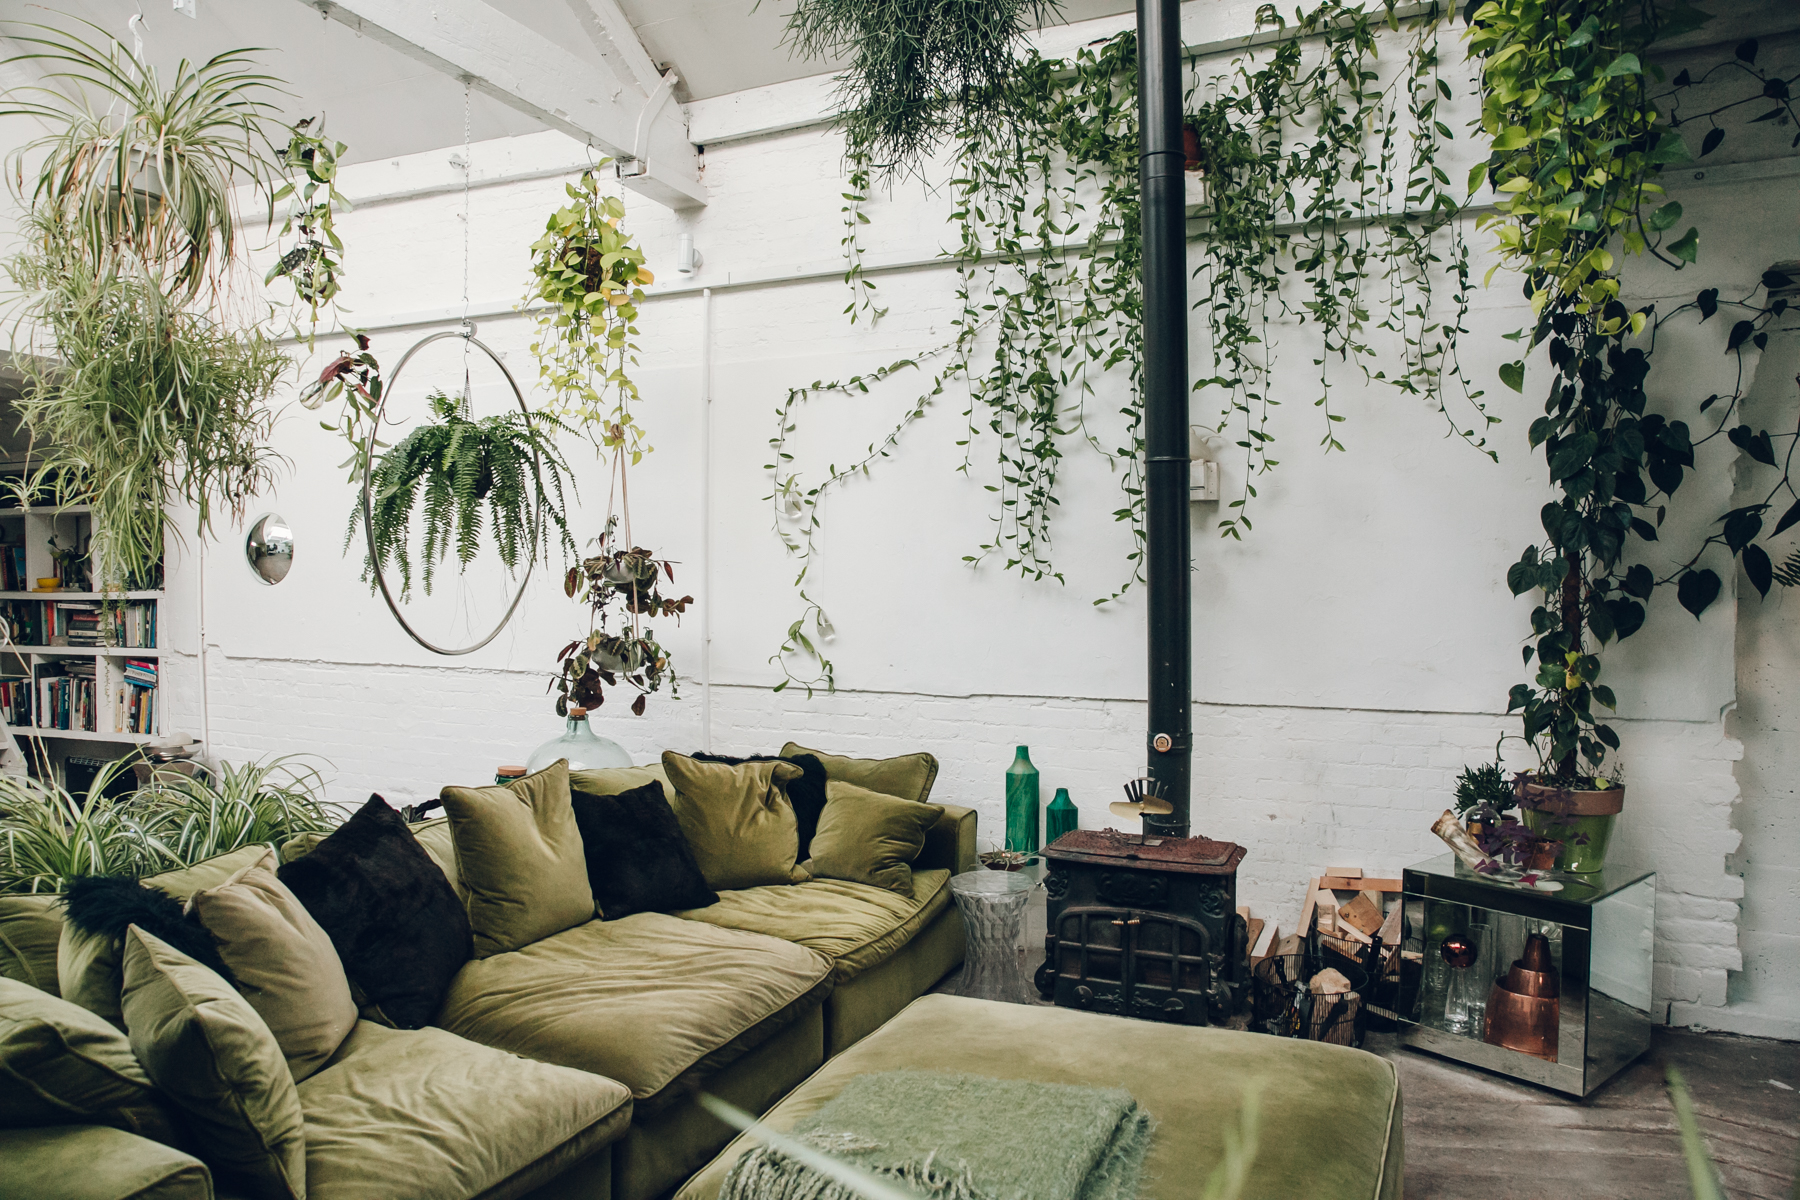 The green living room in Clapton Tram.